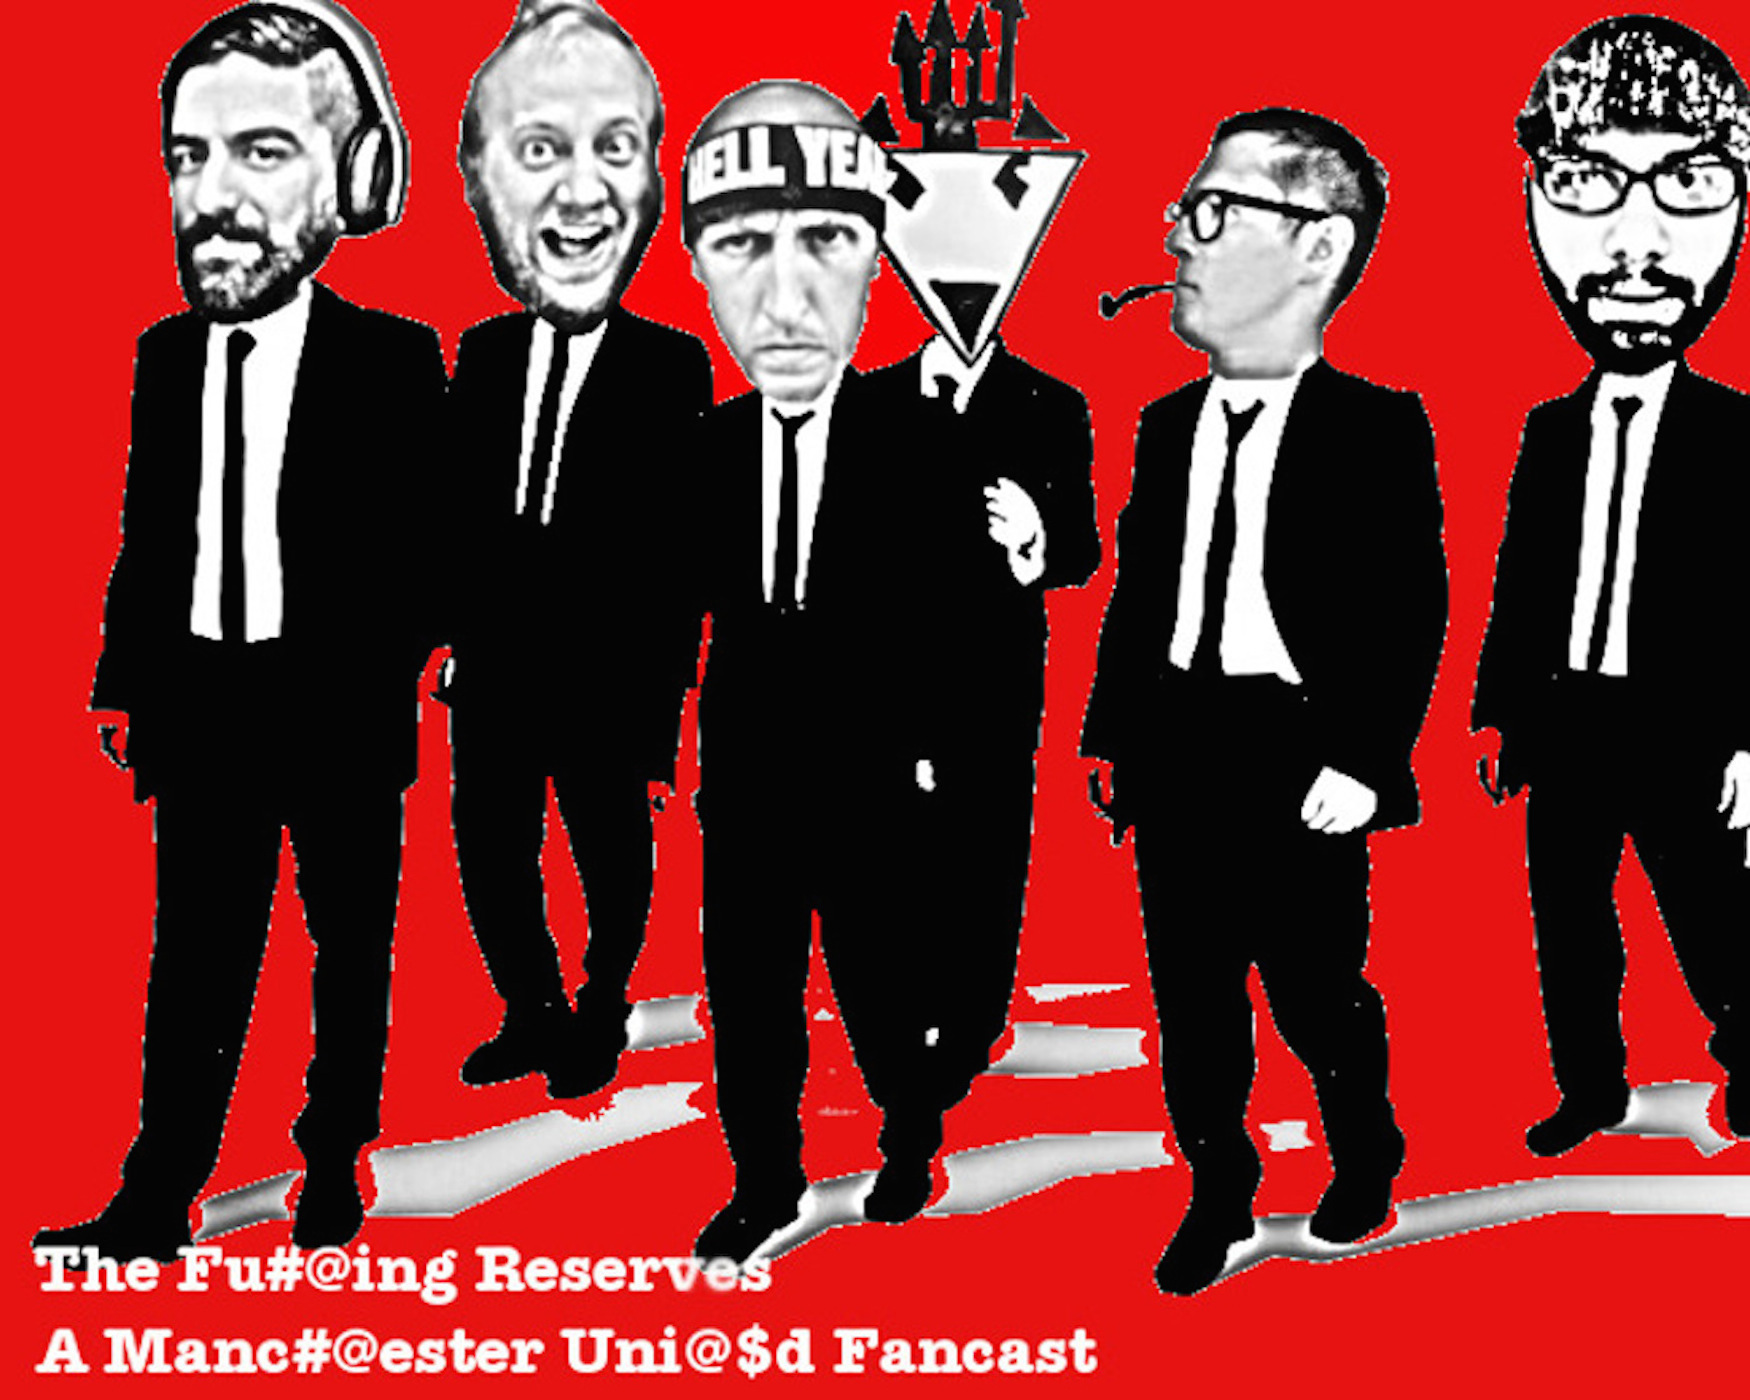 The Reserves Podcast - A Manchester United Football Podcast